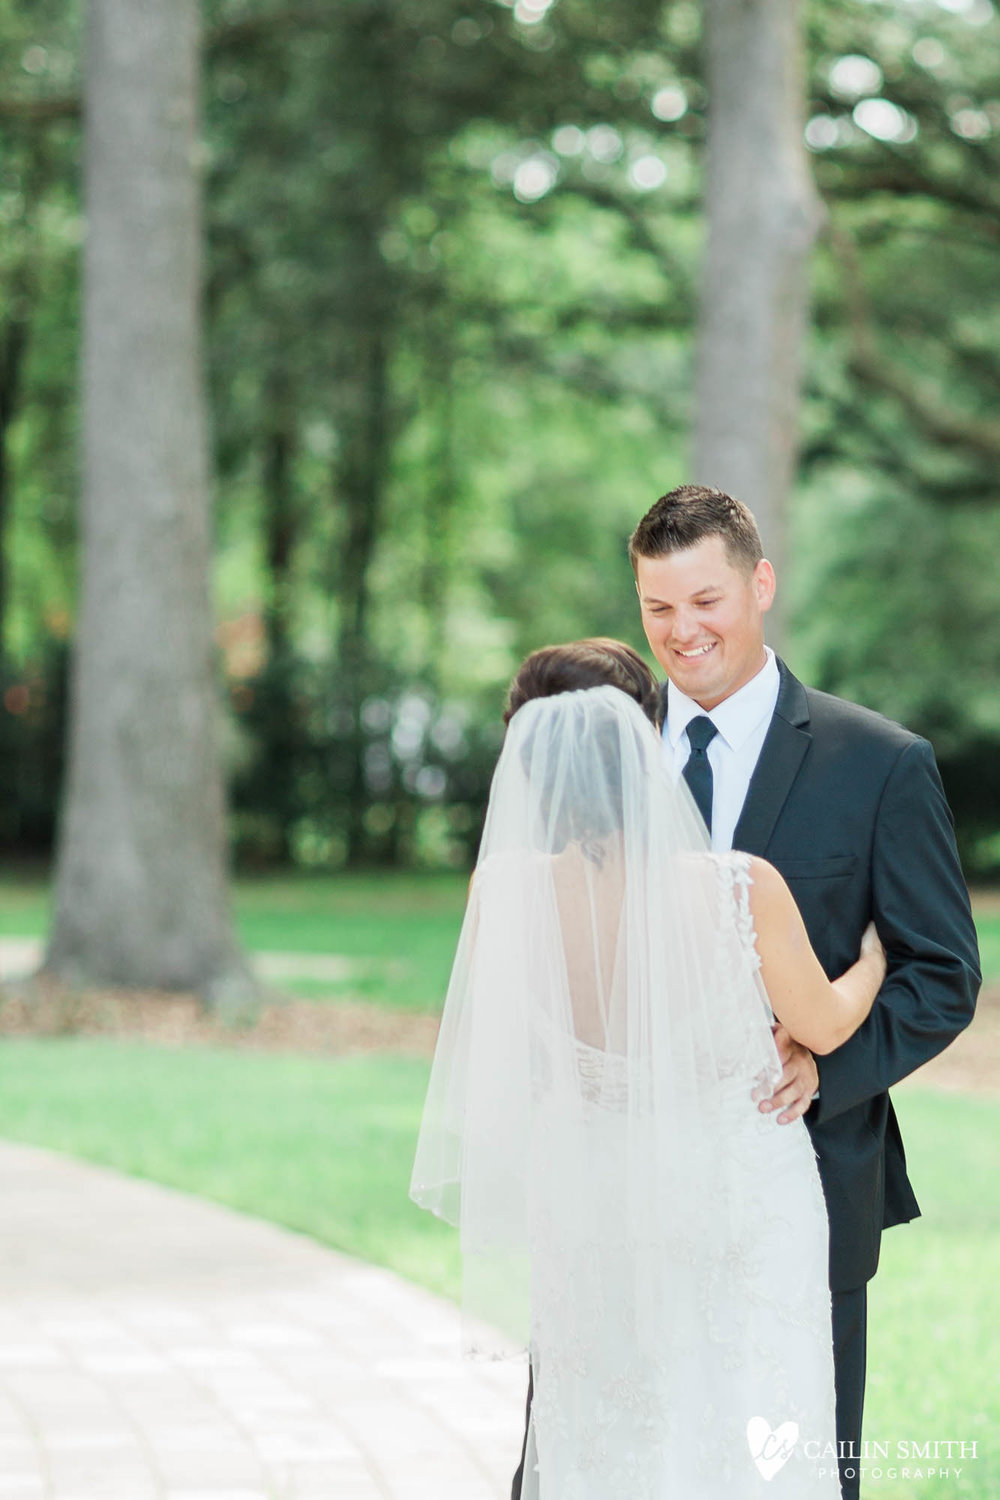 Bethany_Kyle_Bowing_Oaks_Plantation_Wedding_Photography_0033.jpg